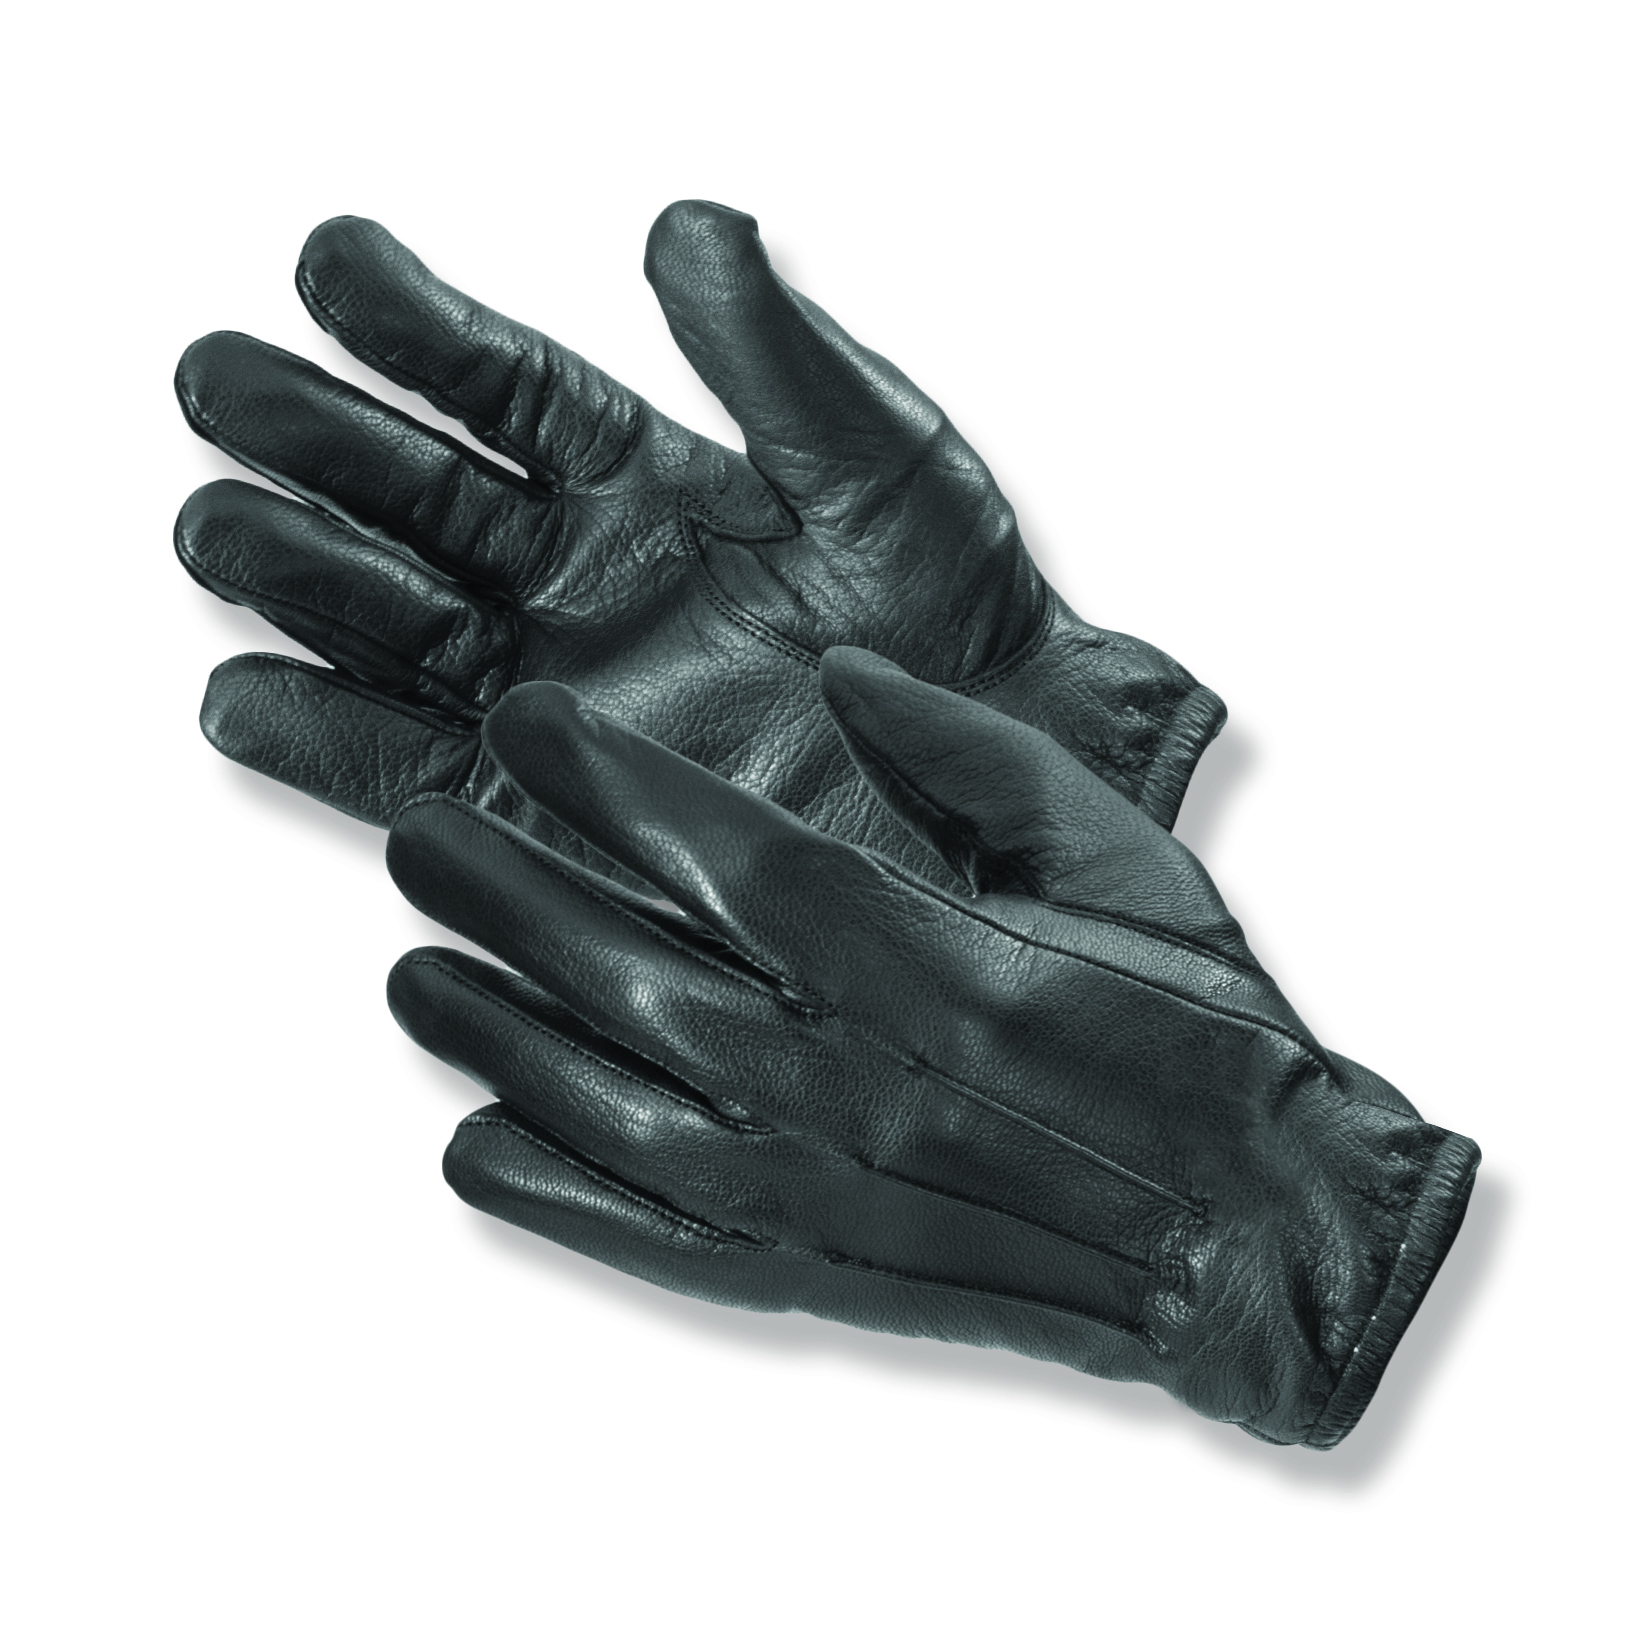 Buy Leather Work Gloves Online From Mds Associates Inc Glove Protector Kevlar Lined Goatskin